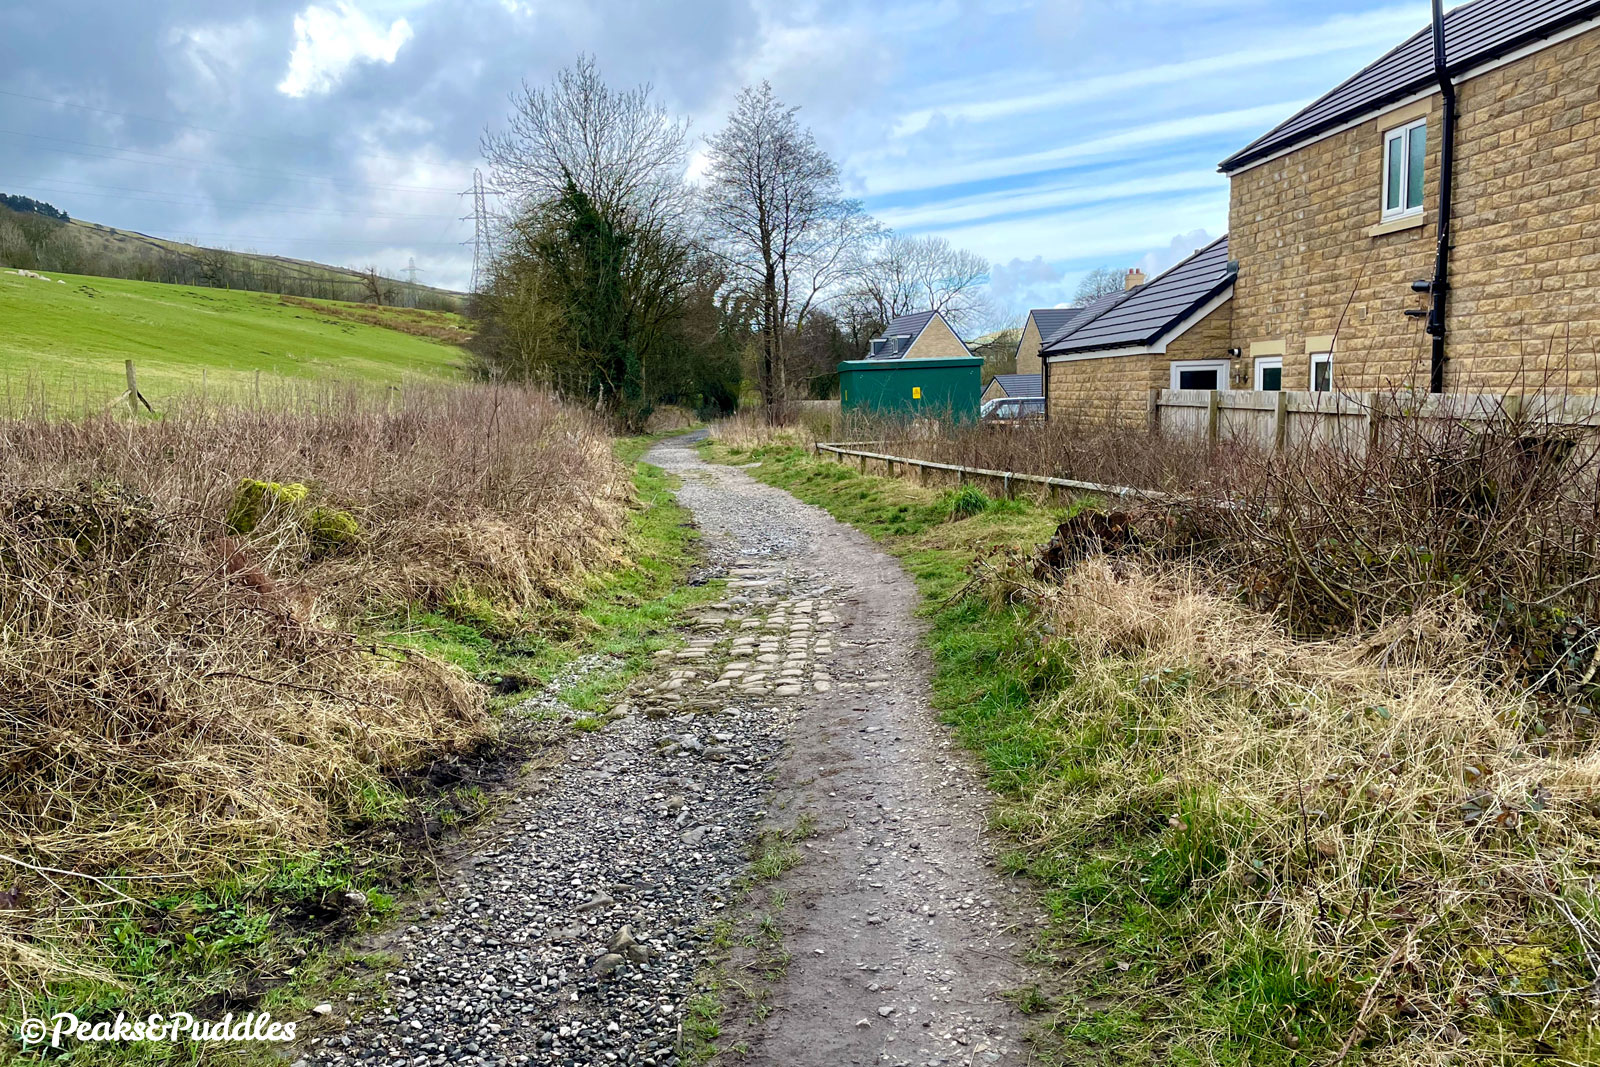 Looking back towards Whitehough alongside Forge Manor housing development. The cobbles here are nothing on what's to come!